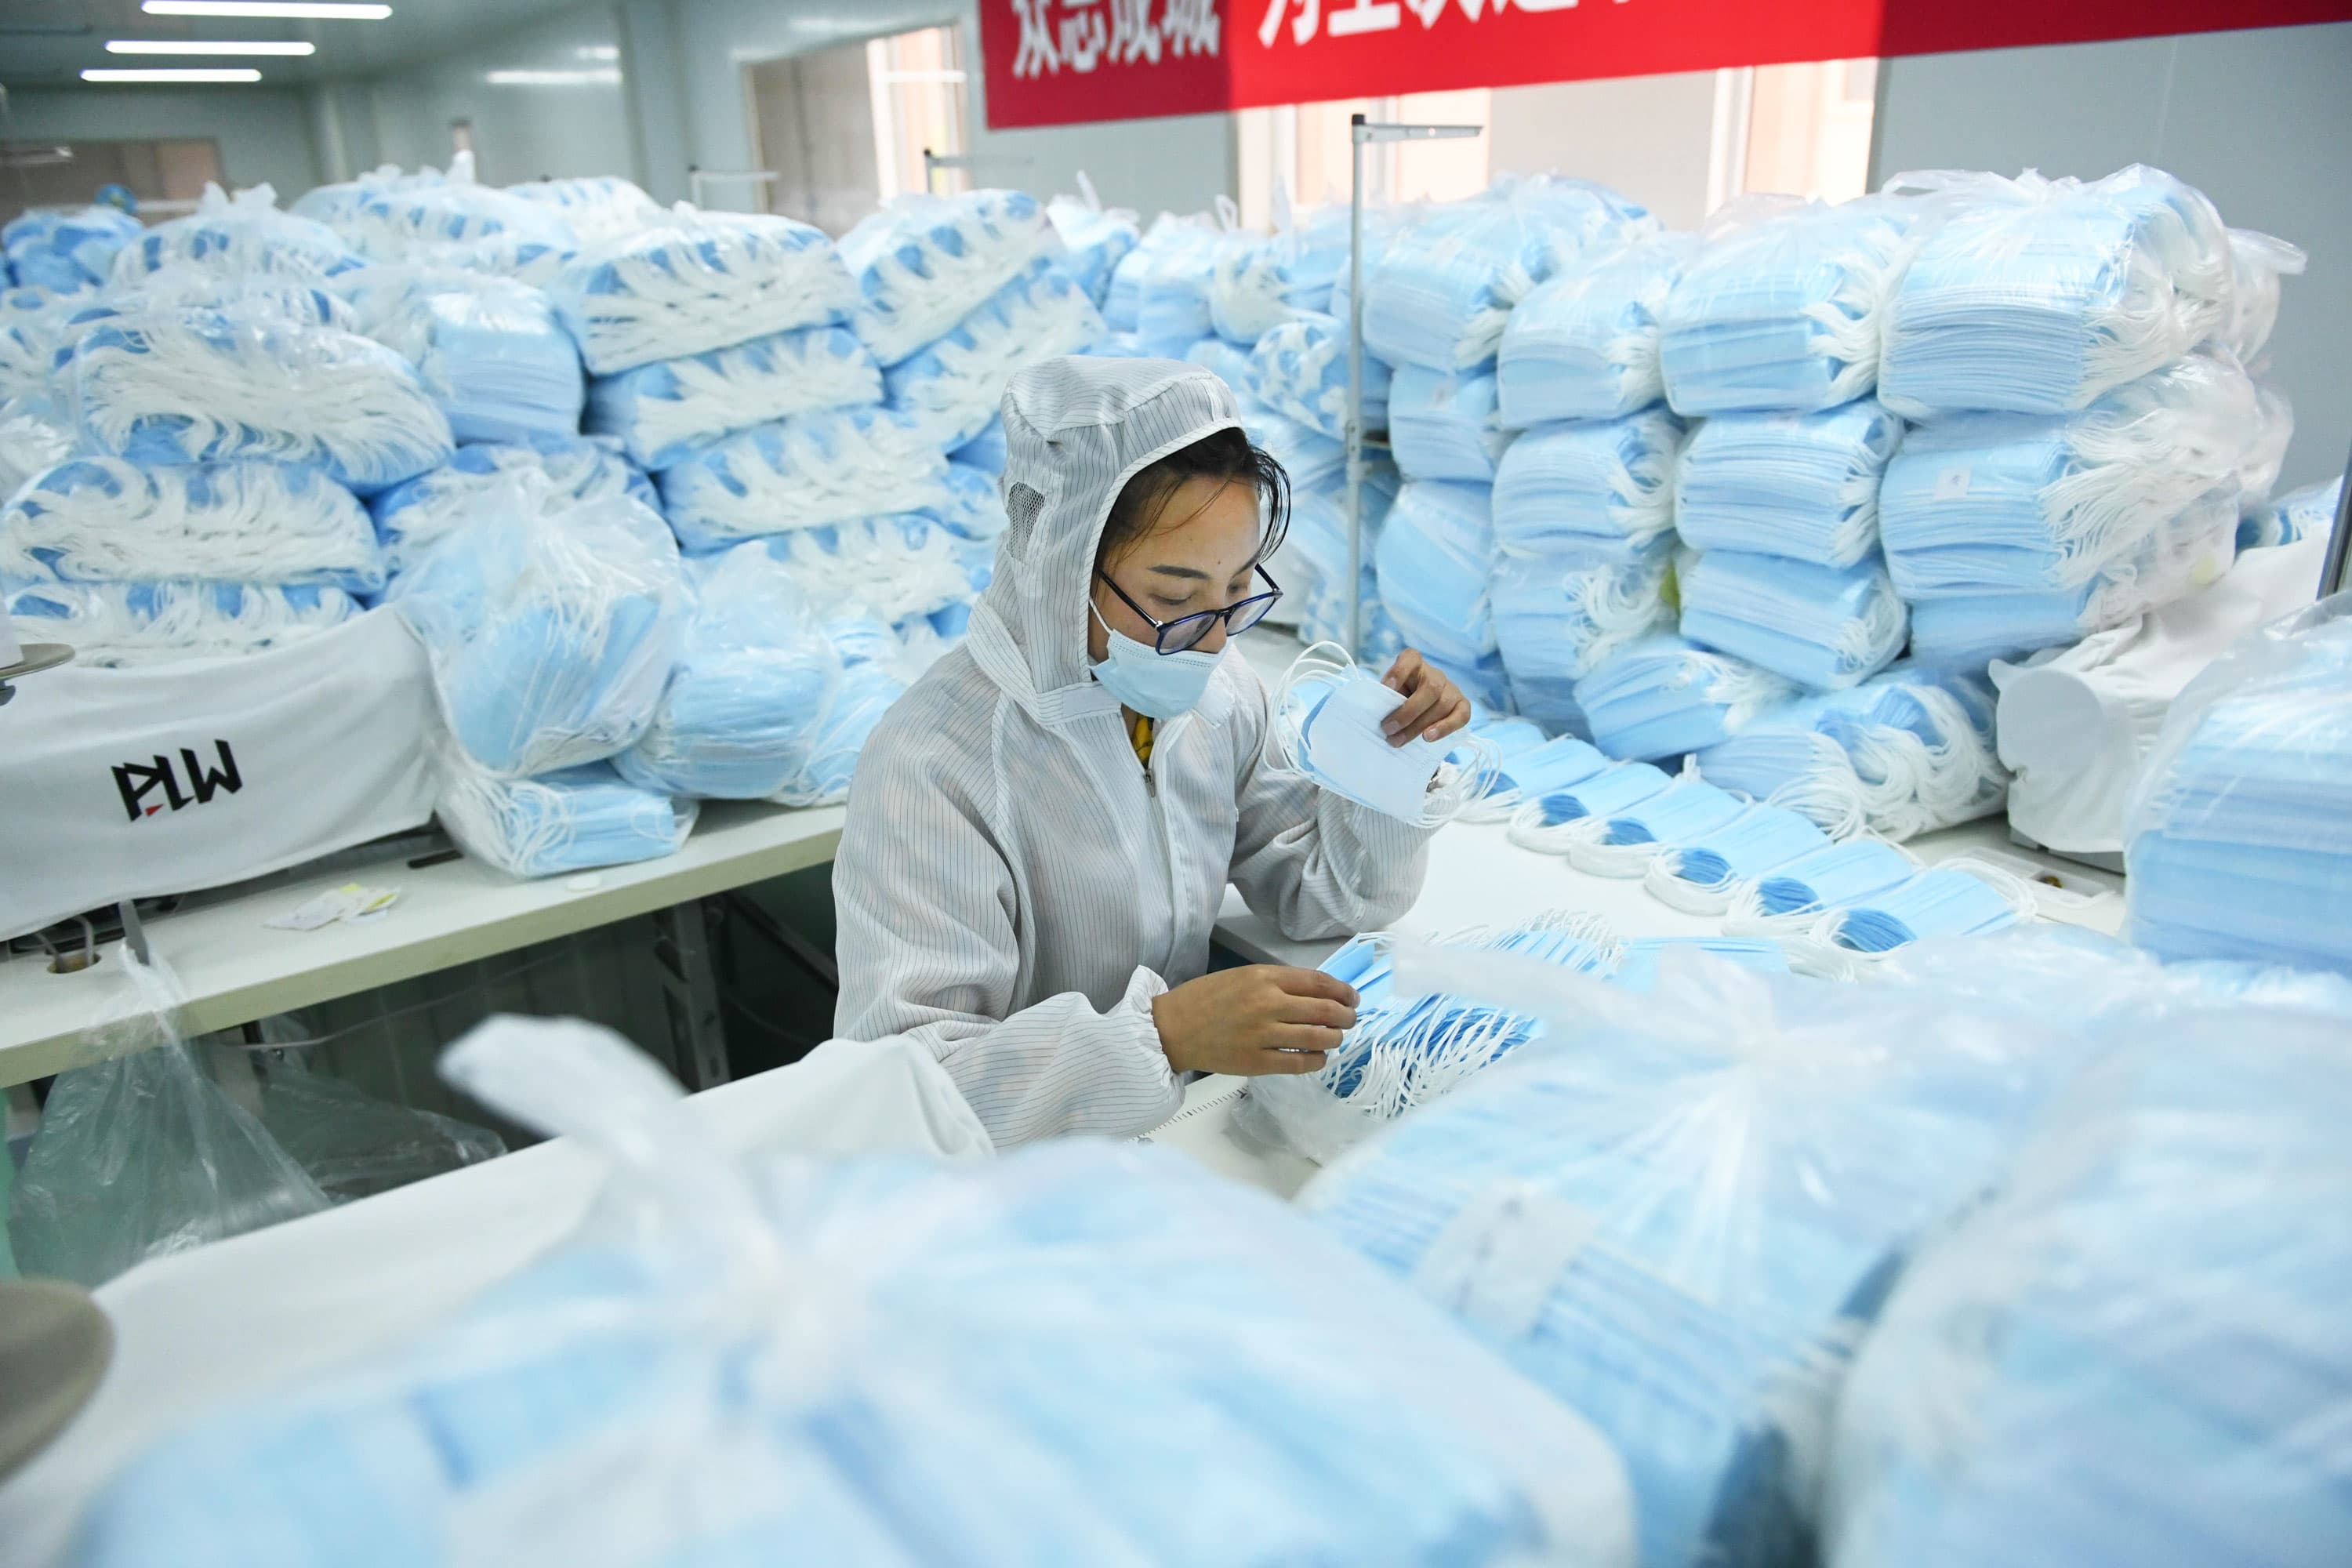 Chinese health product exports on the rise as coronavirus pandemic persists